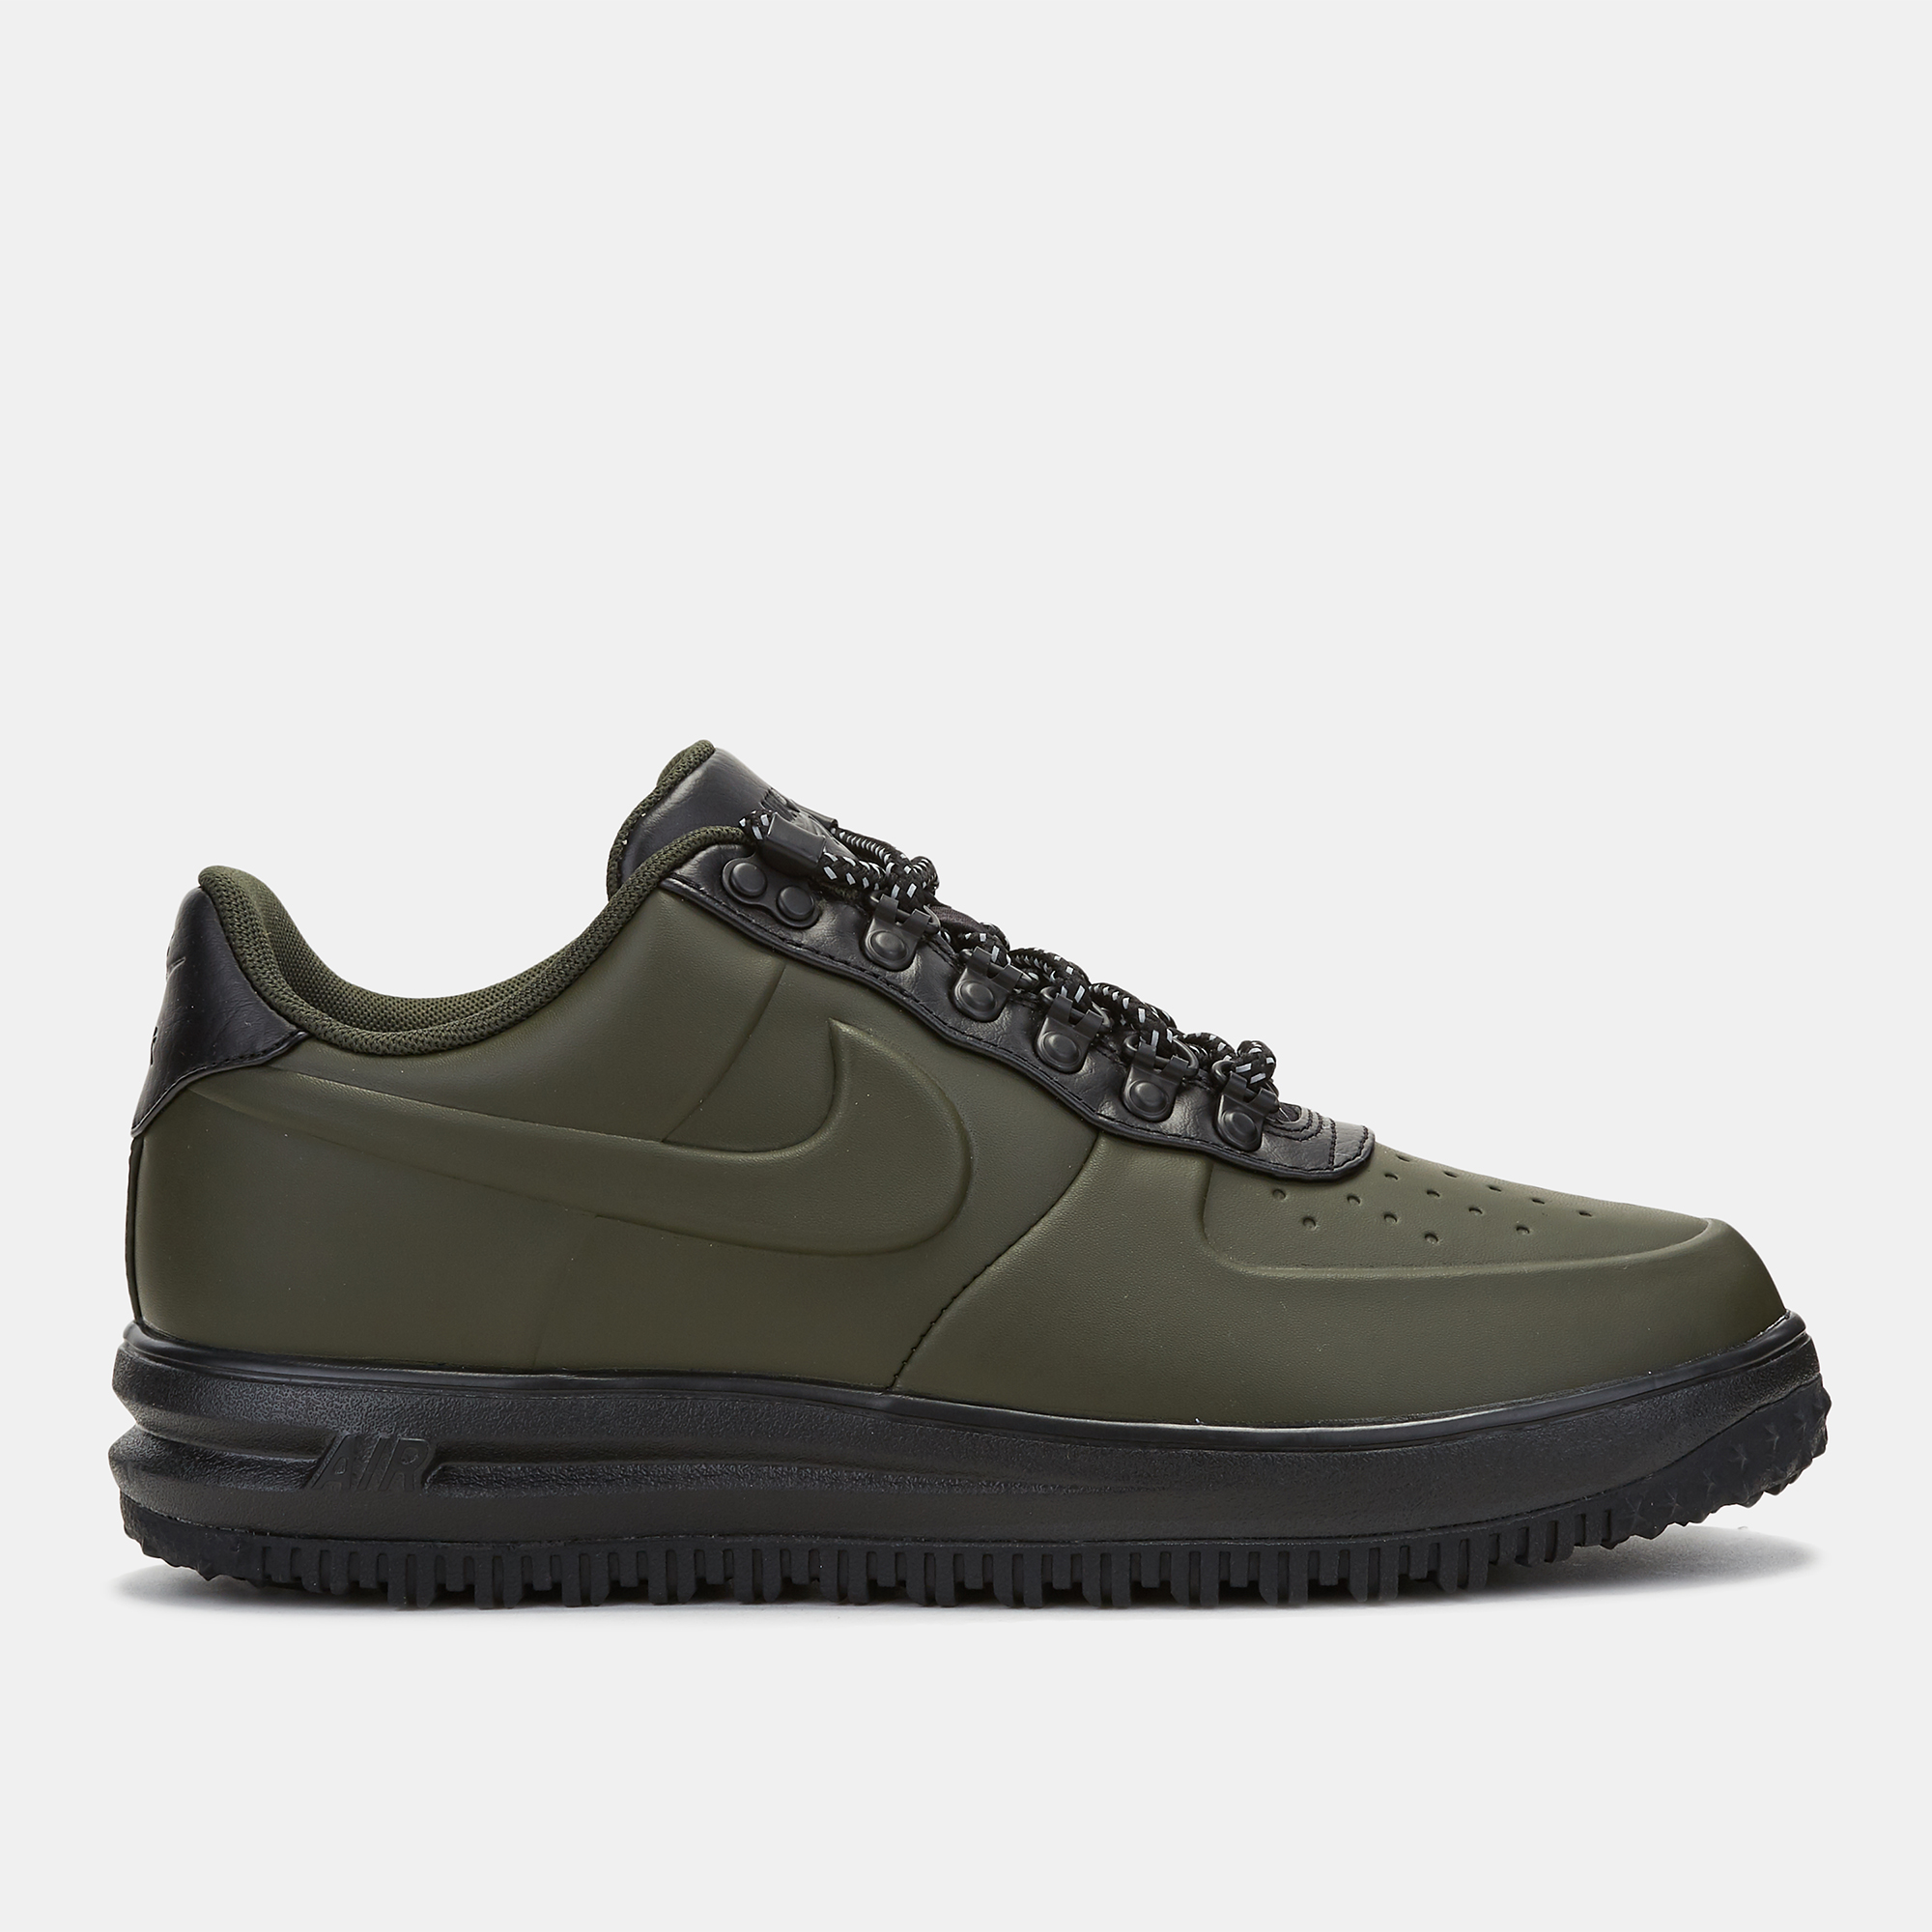 detailed look 07ed9 ee904 Shop Green Nike Lunar Force 1 Duckboot Low Shoe for Mens by Nike   SSS